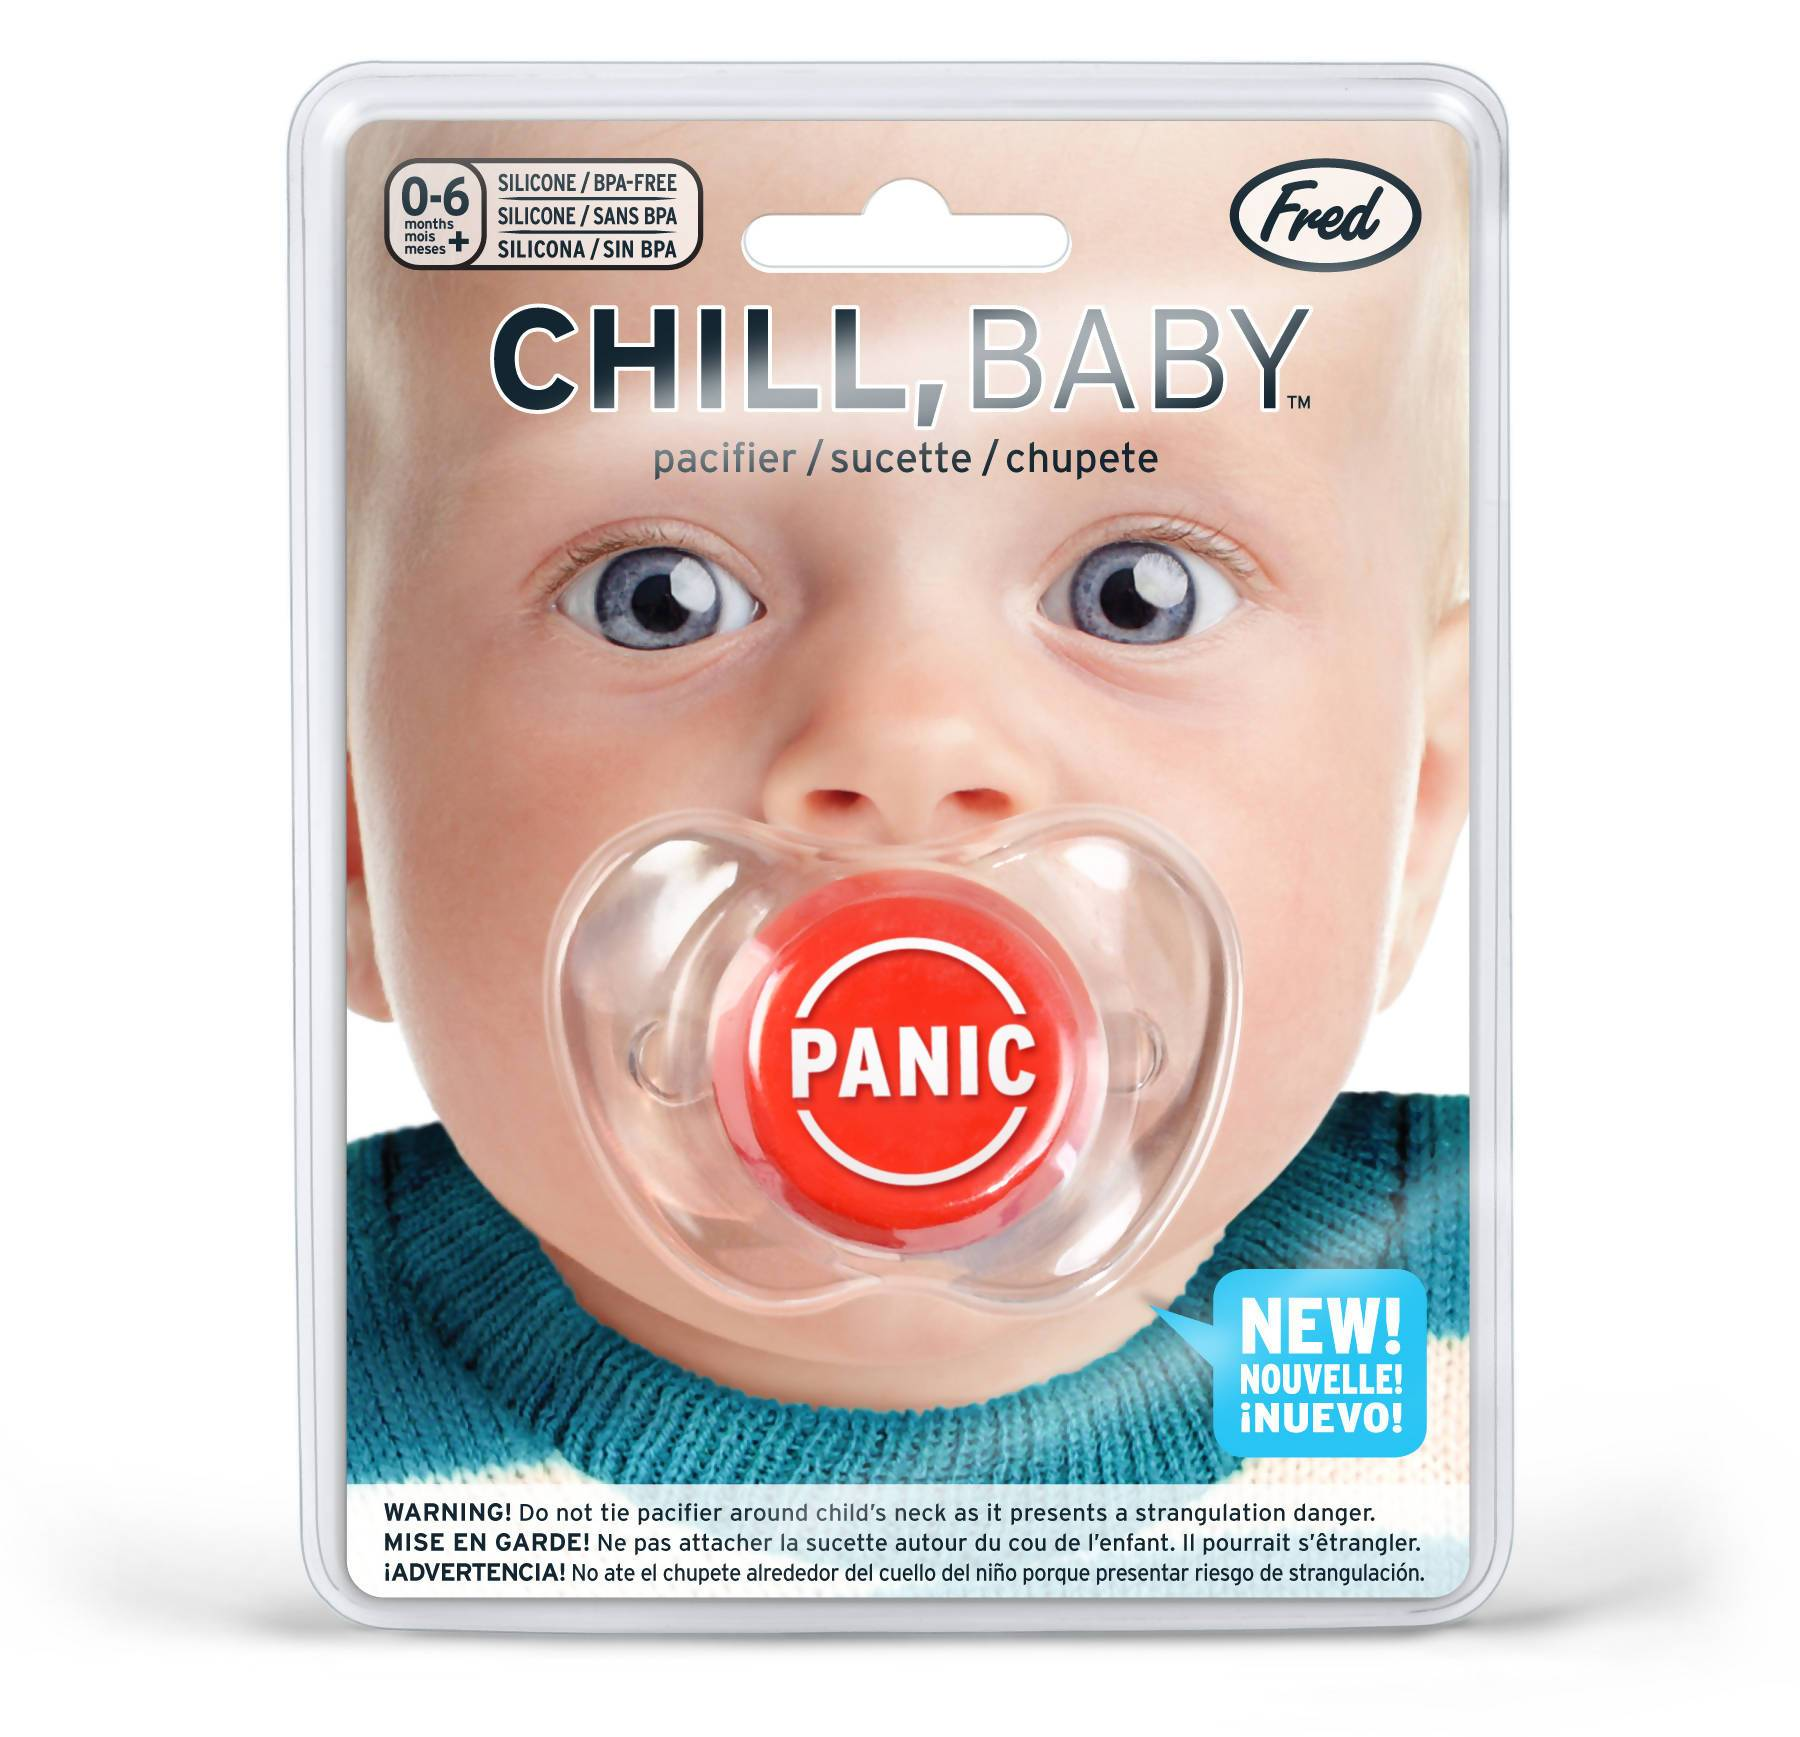 Fred Chill Baby - Pacifier (Panic) - Baby Accessories - The Planet Collection - Naiise